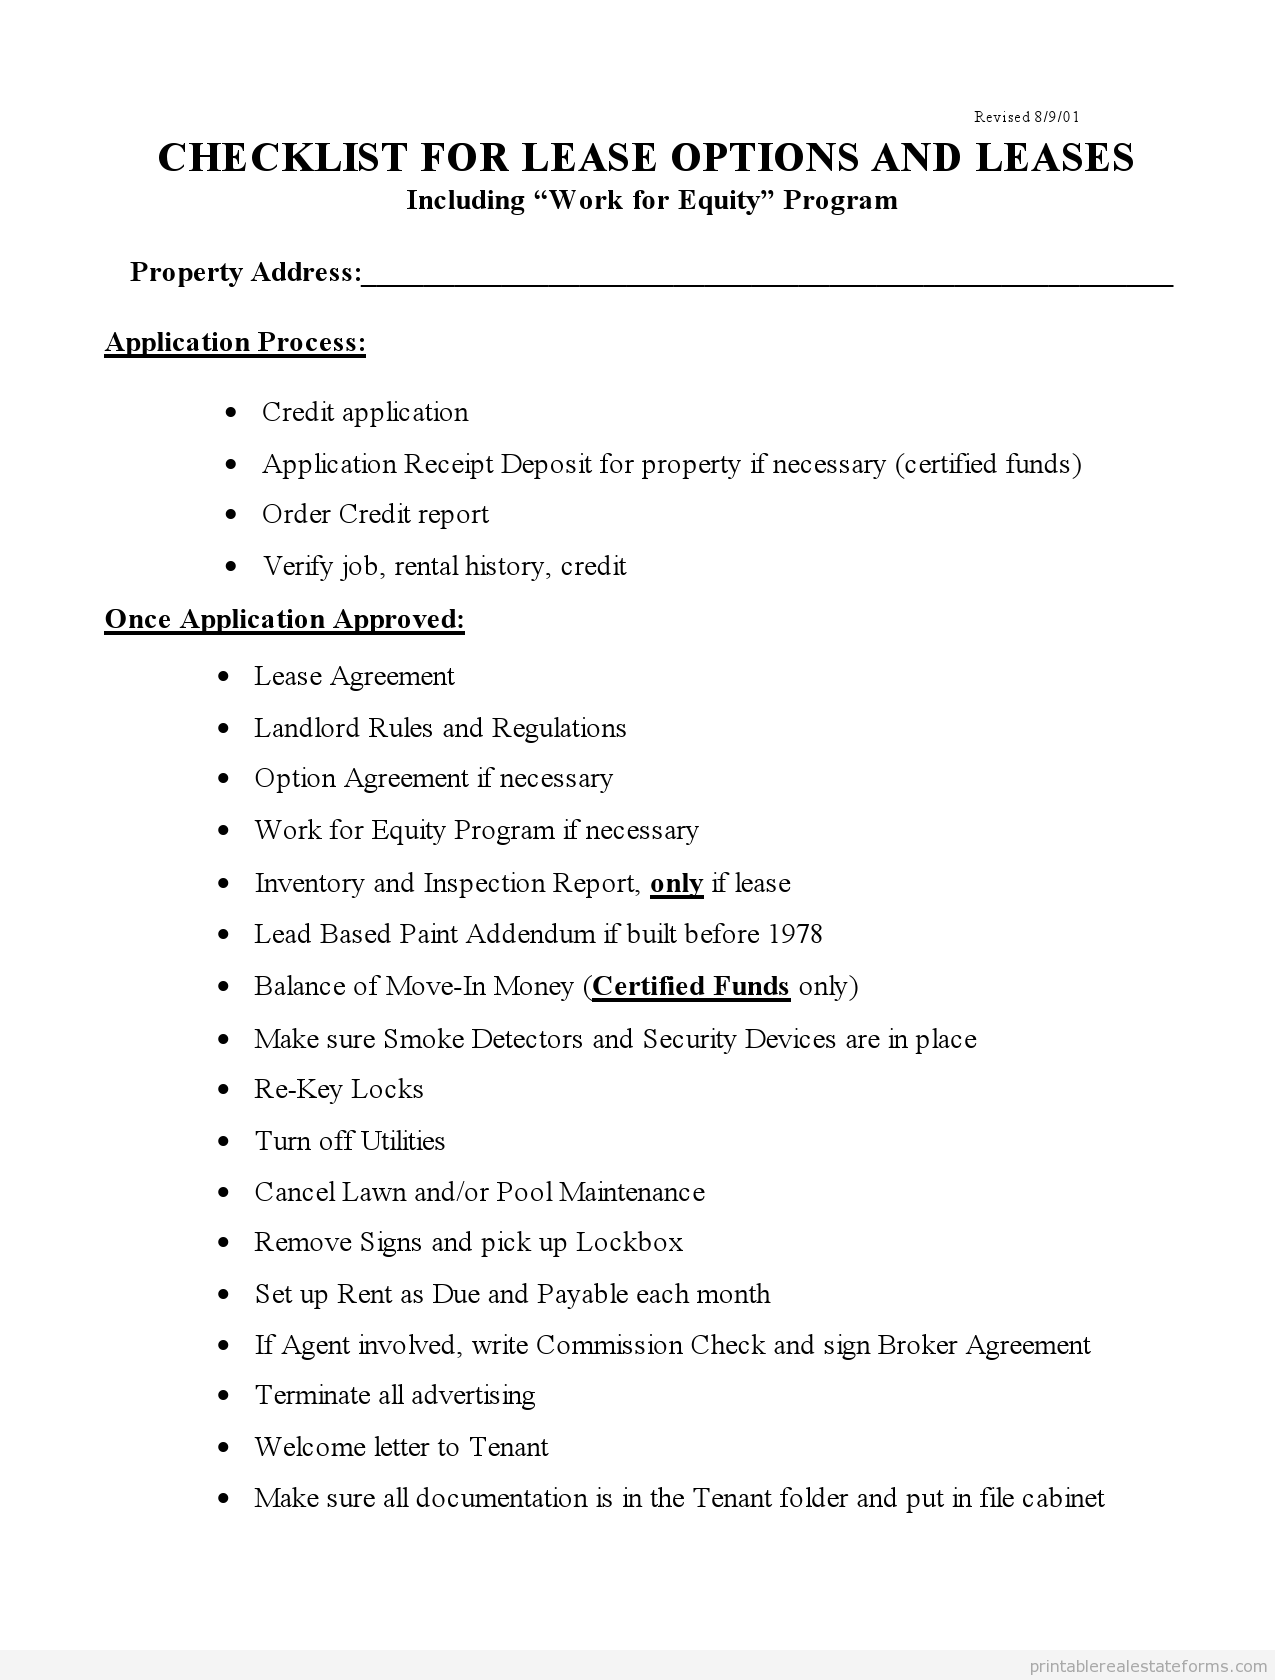 Sample Printable Checklist For Lease Options And Leases Real